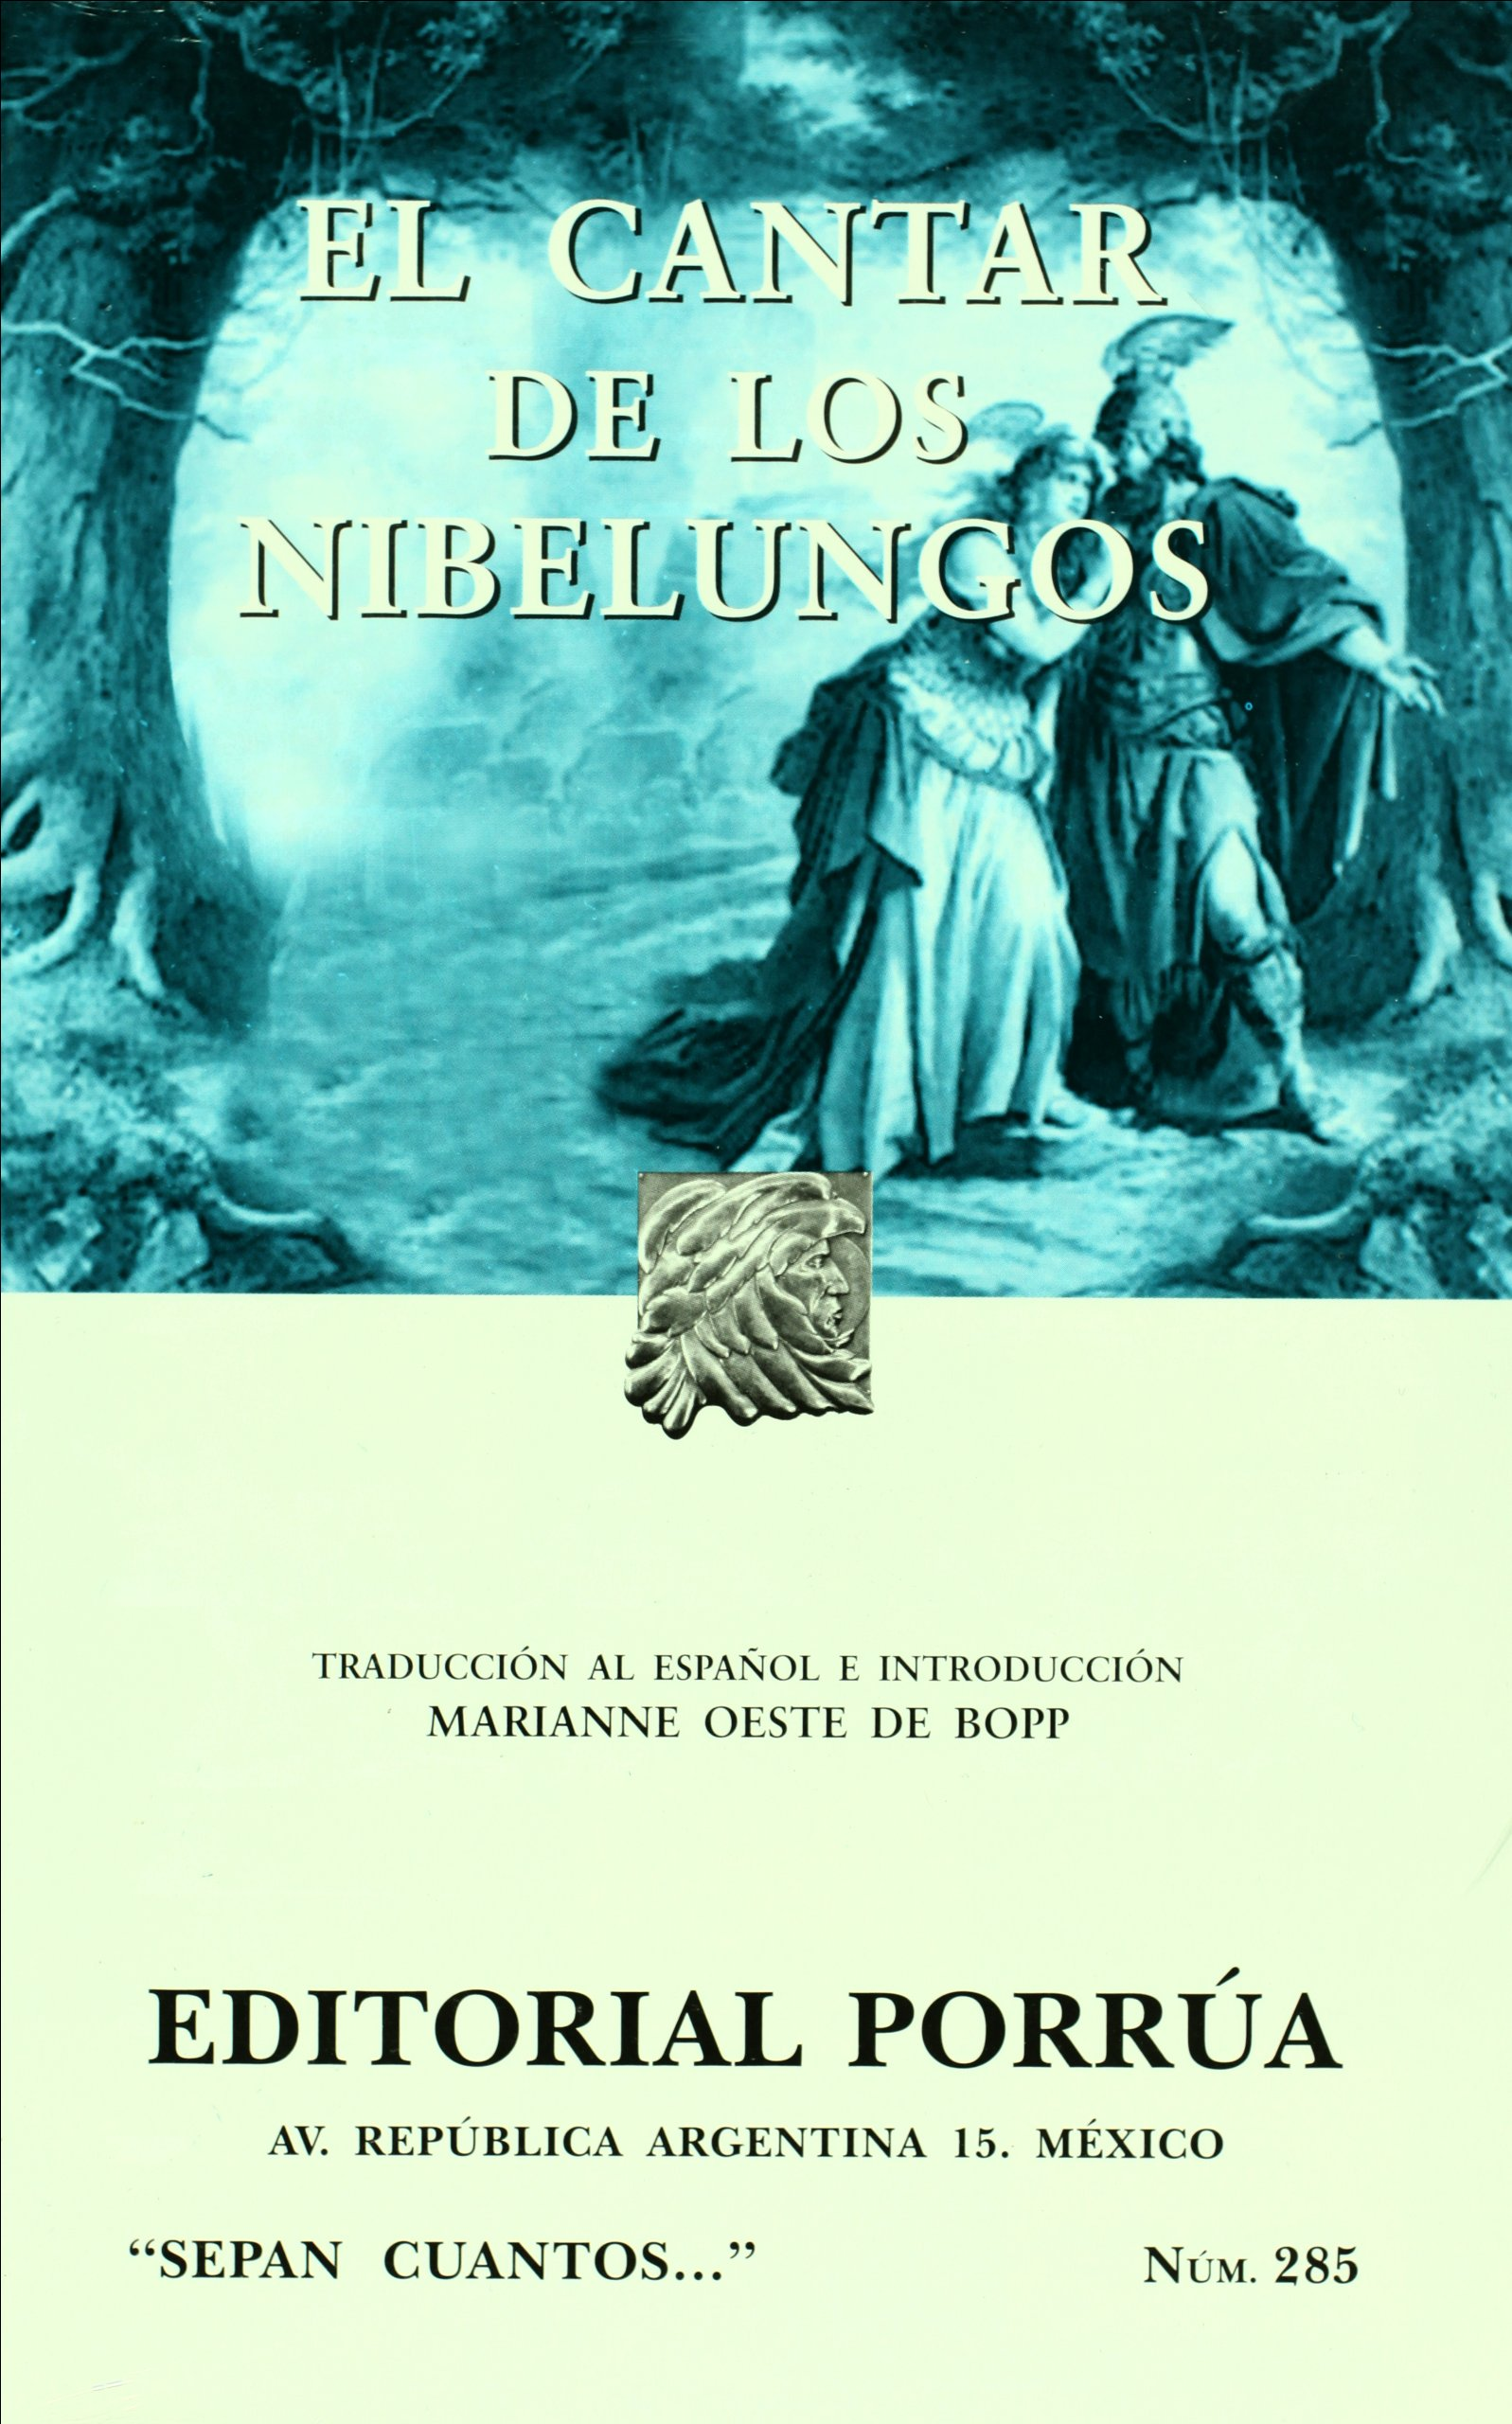 El Cantar De Los Nibelungos Spanish Edition Amazon Co Uk Sin Autor 9789700757544 Books